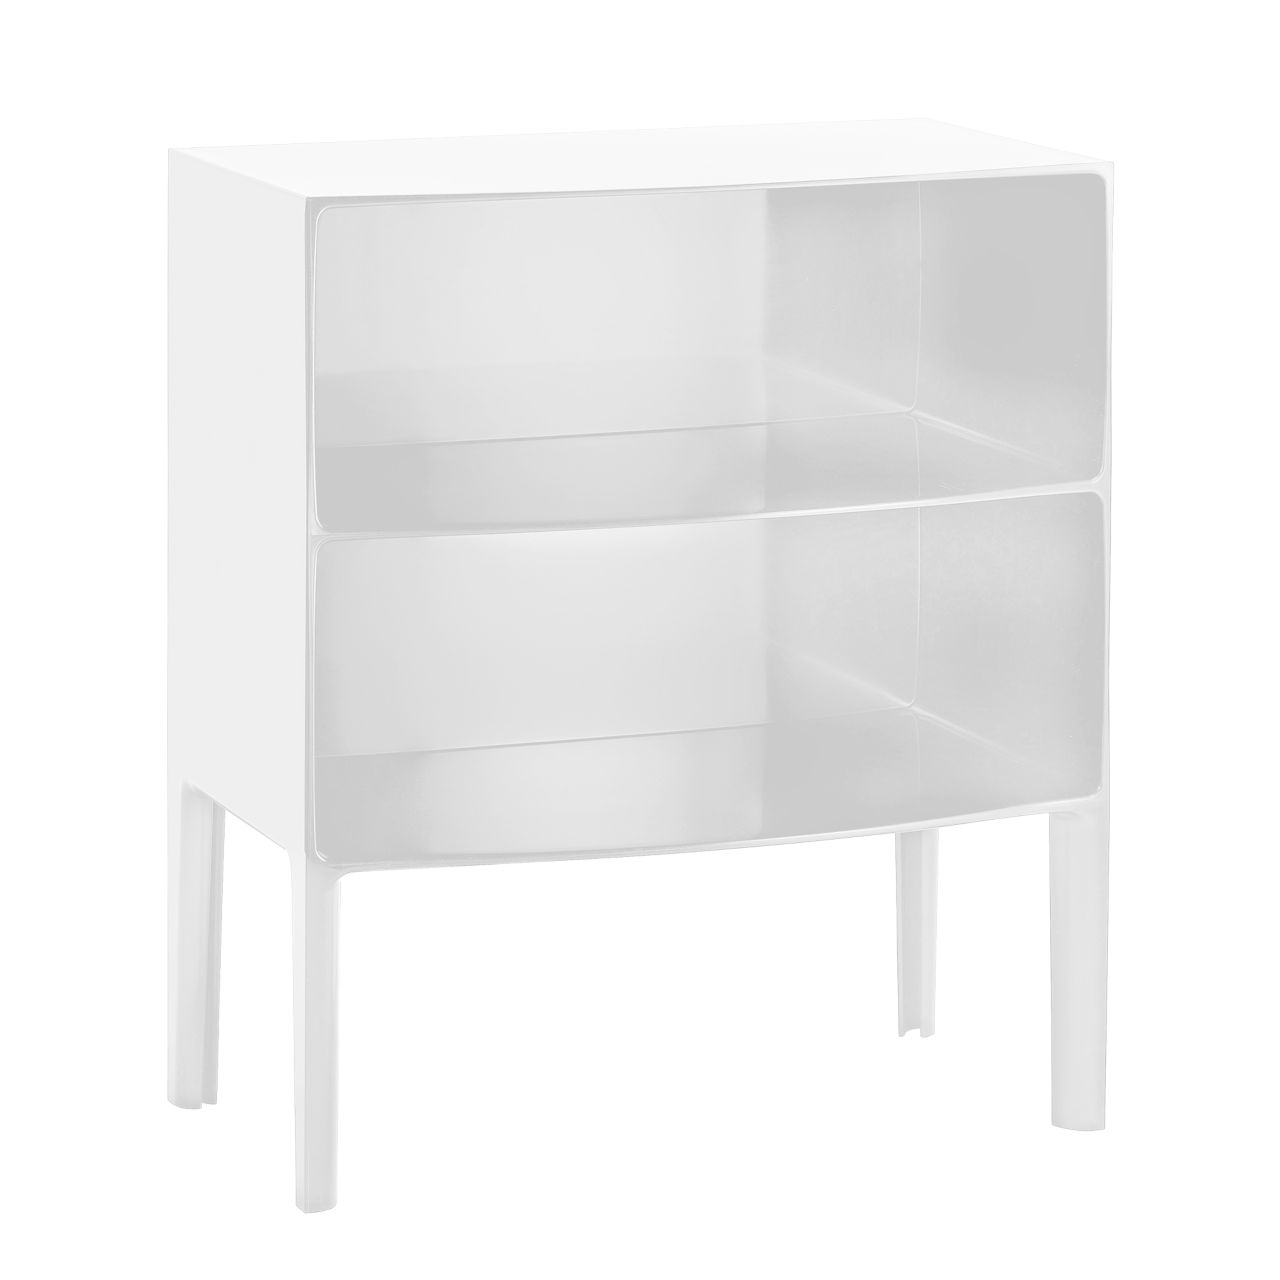 Ghost Buster in White by Kartell